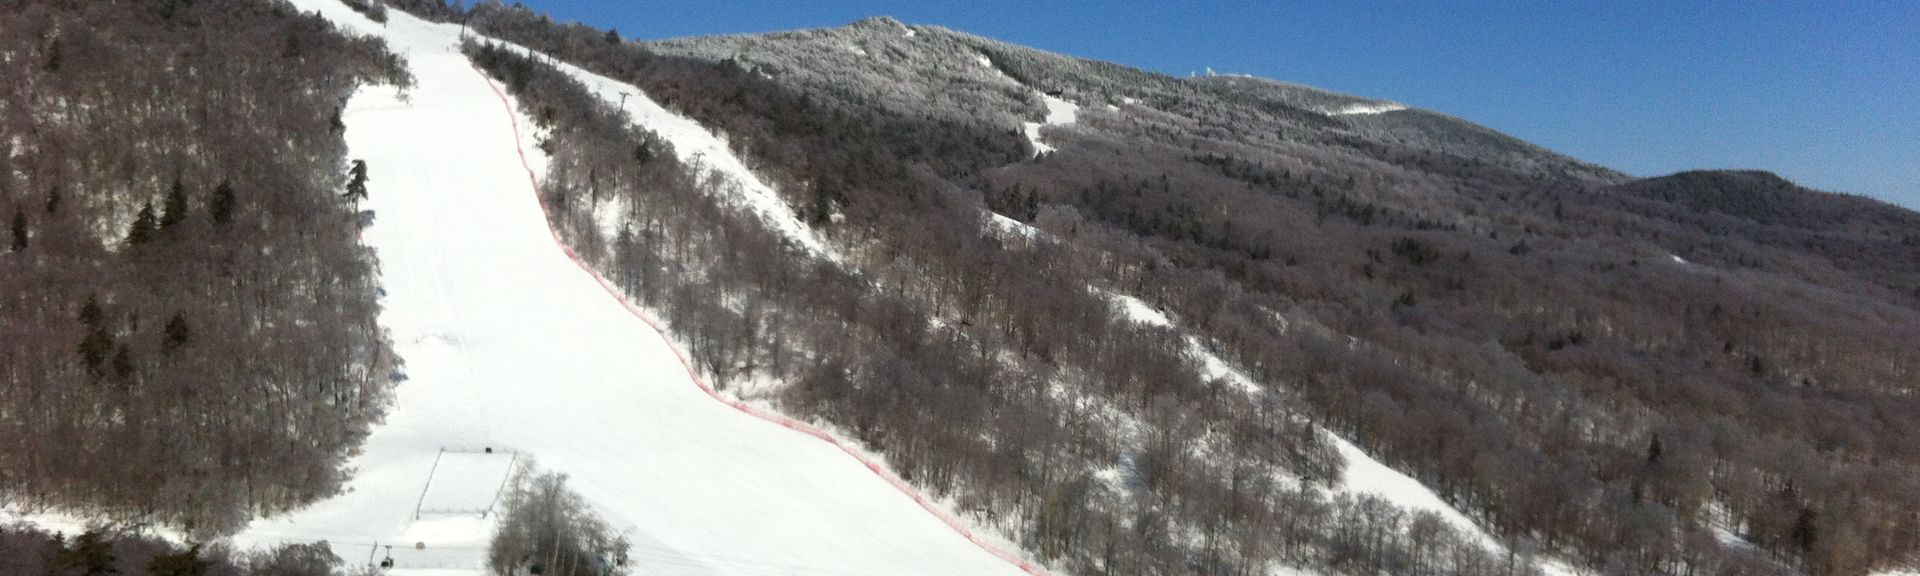 Quechee Ski Hill, White River Junction, Vermont, United States of America